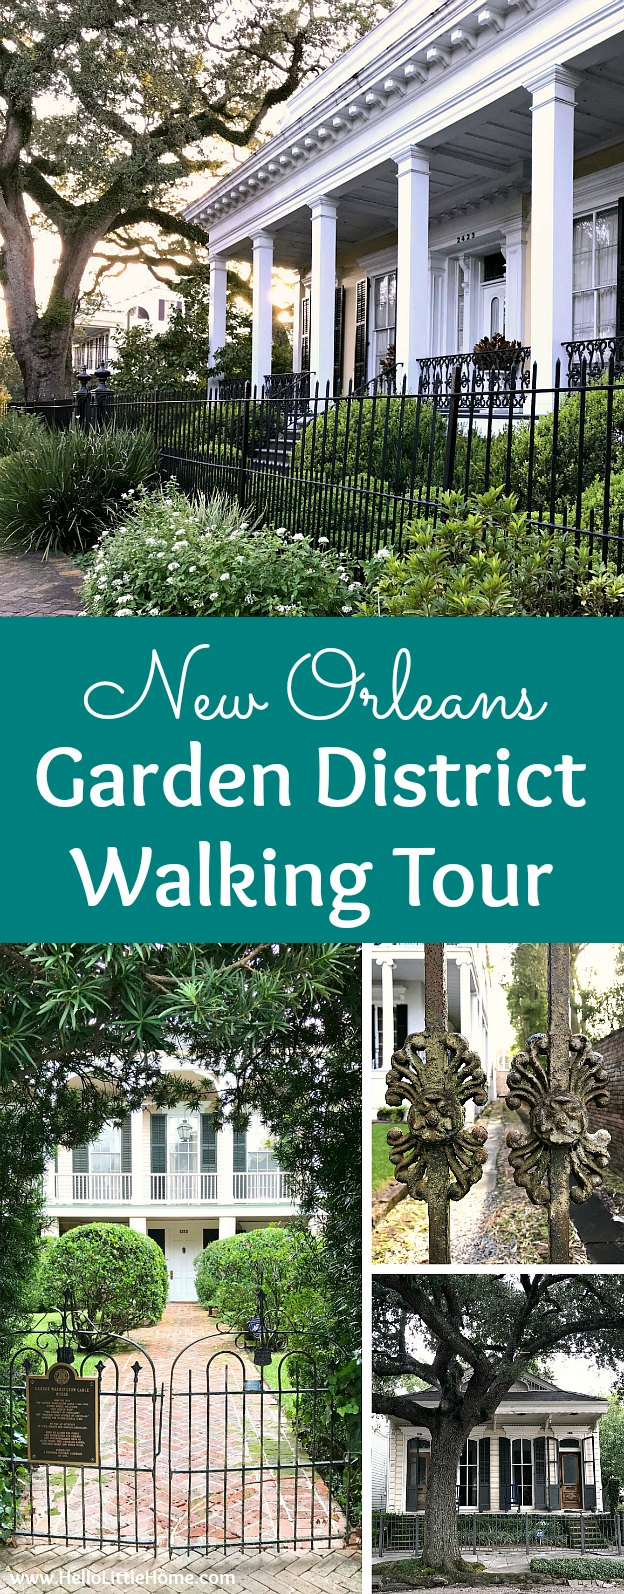 Permalink to Self Guided Walking Tours New Orleans